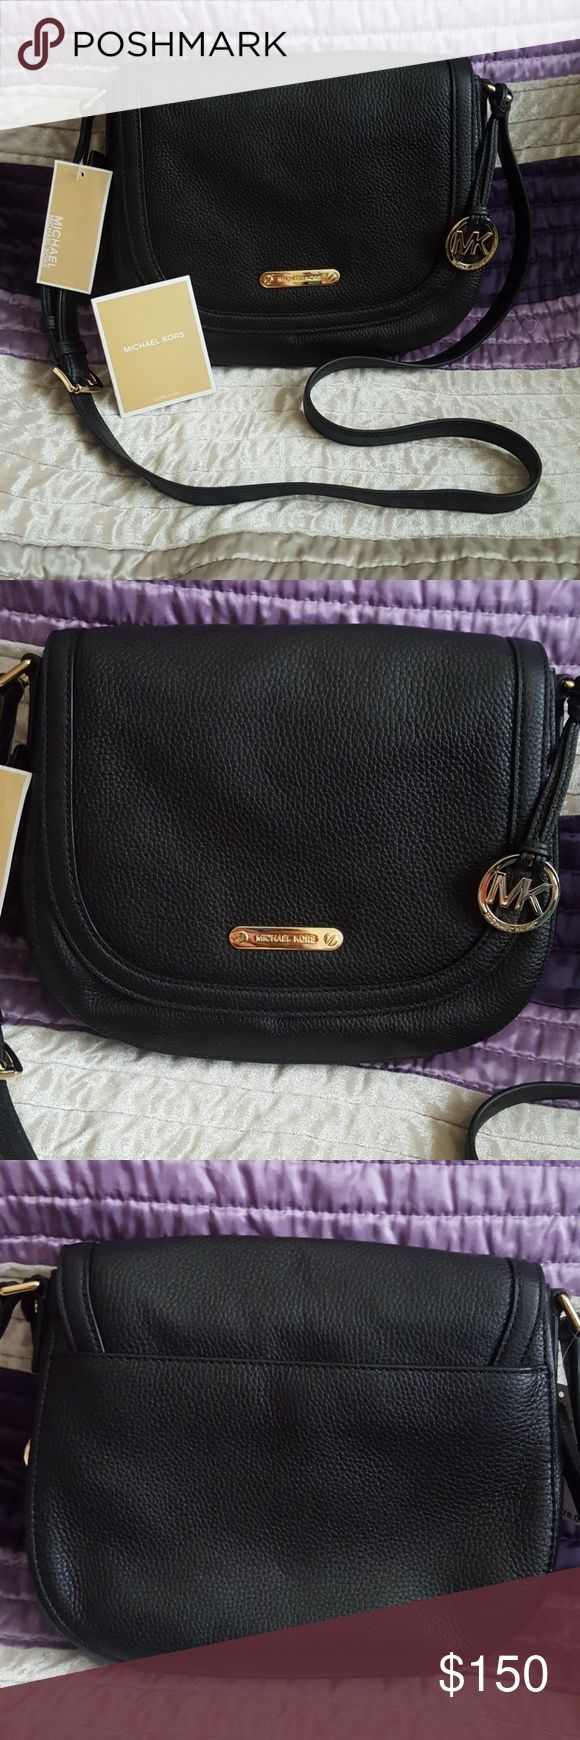 """NWT Michael Kors Black Blakeley Crossbody Purse NWT Michael Kors Large Black Blakeley Crossbody Messenger Purse. Brand new with tags. Black leather with gold hardware. Exterior has a back snap closure slip pocket. Bag interior has 2 slip pockets and a zippered pocket. Adjustable shoulder strap with a snap closure. Has a hanging MK purse charm. DIMENSIONS: 10.5"""" L x 2.7"""" W x 9.5"""" H, strap drop 20"""" - 22"""". Michael Kors Bags Crossbody Bags"""